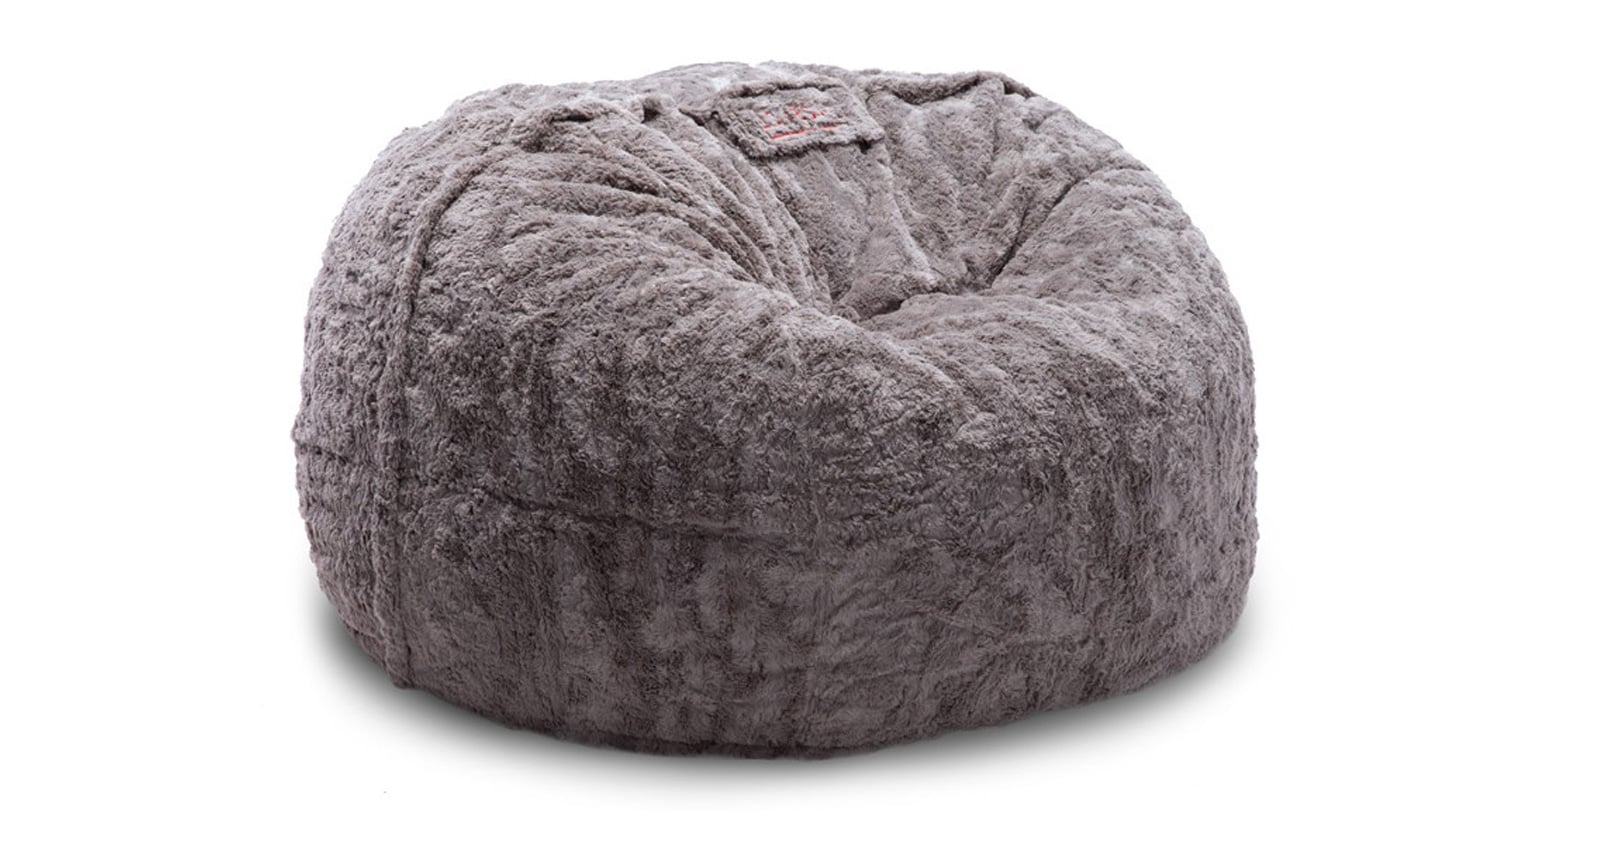 The Bigone Bean Bag From Lovesac Popsugar Uk Parenting